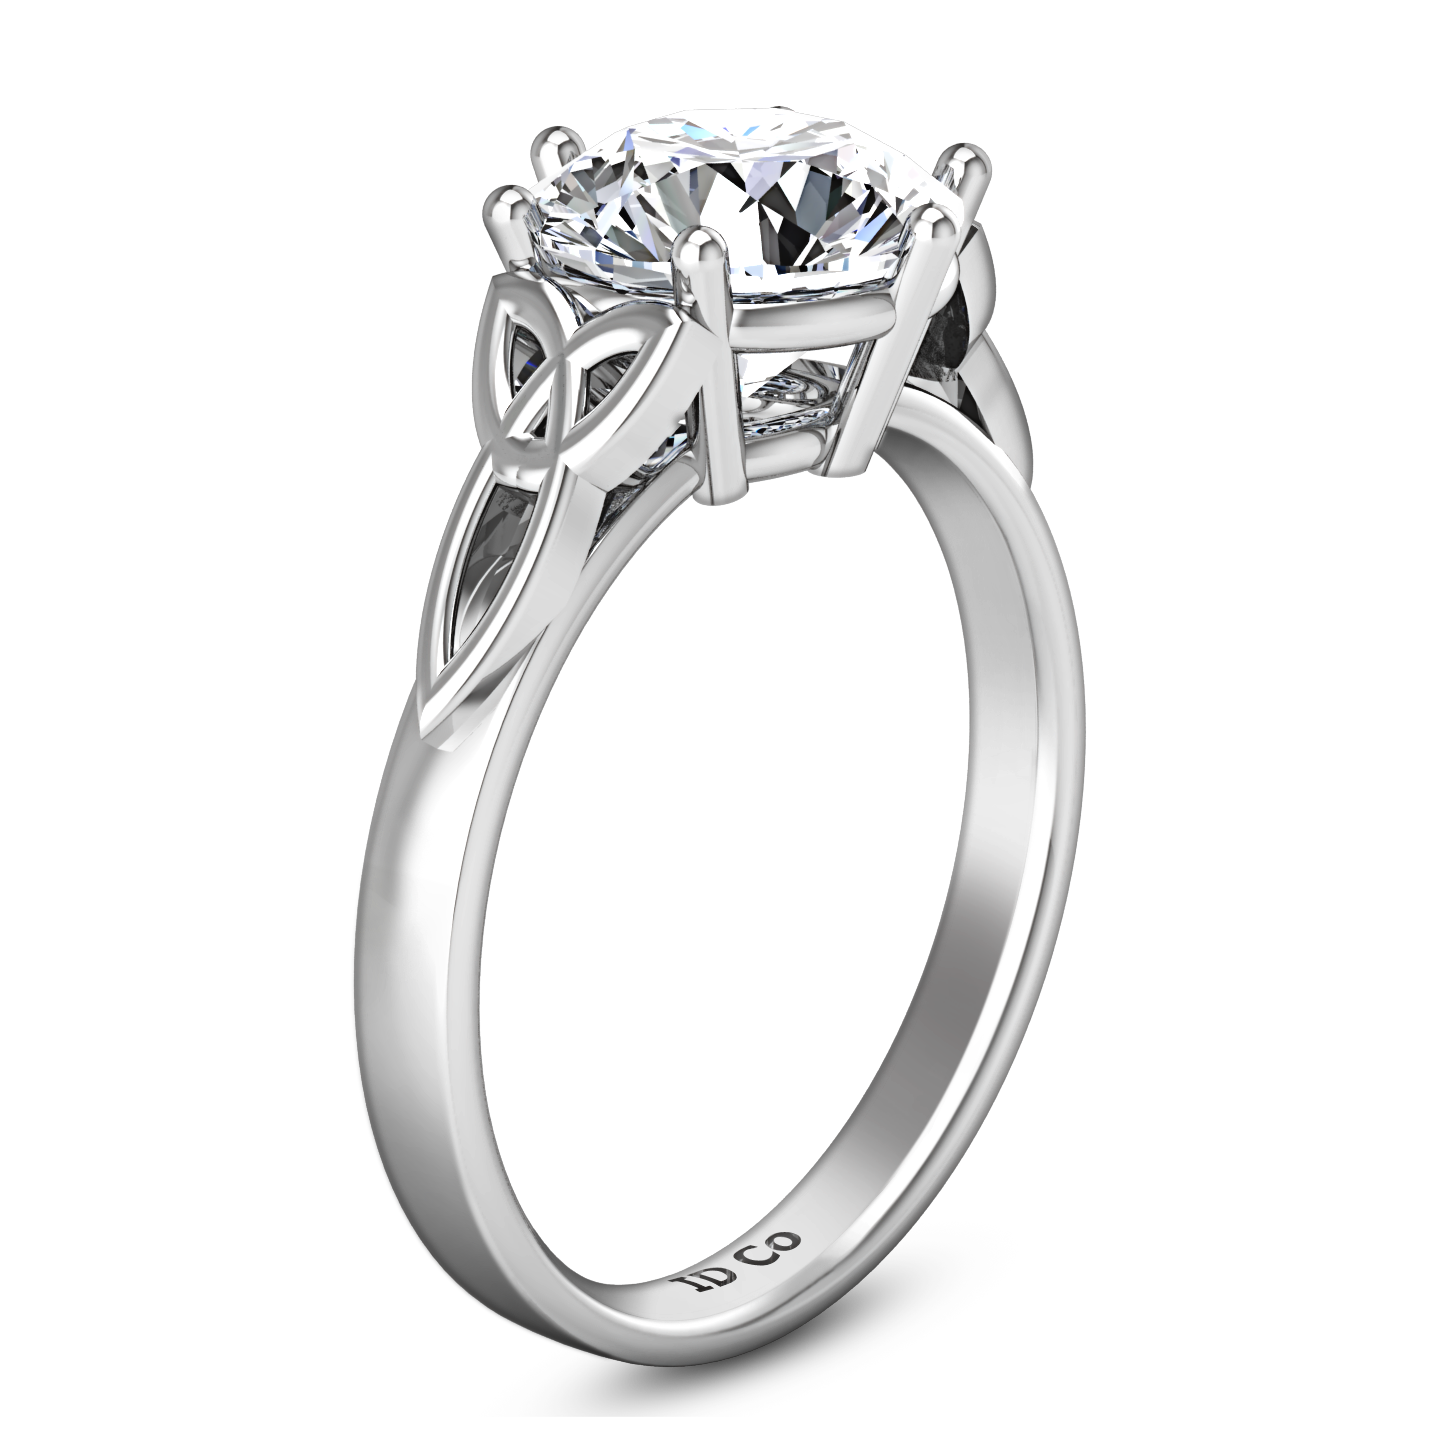 solitaire engagement gold w ring white perp imagine fiona celtic wedding products knot rings